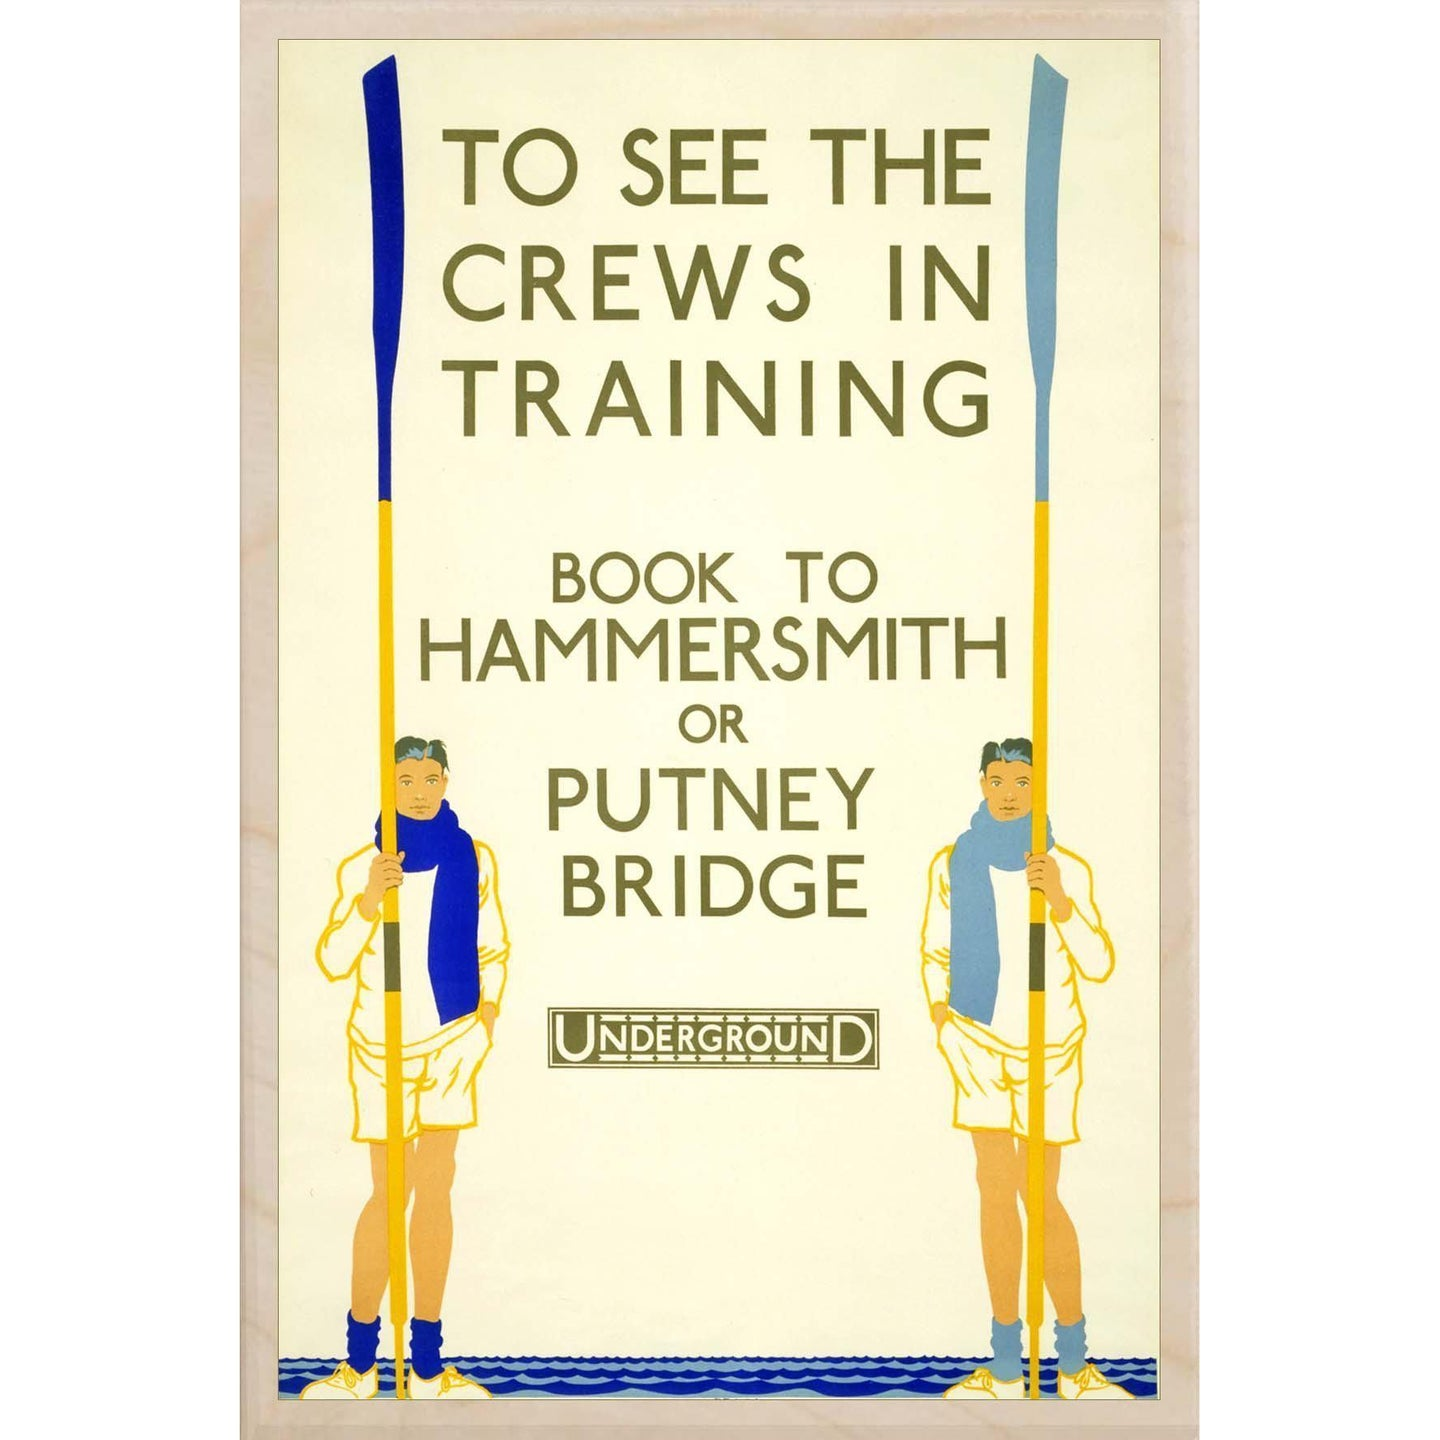 CREWS IN TRAINING-[wooden_postcard]-[london_transport_museum]-[original_illustration]THE WOODEN POSTCARD COMPANY